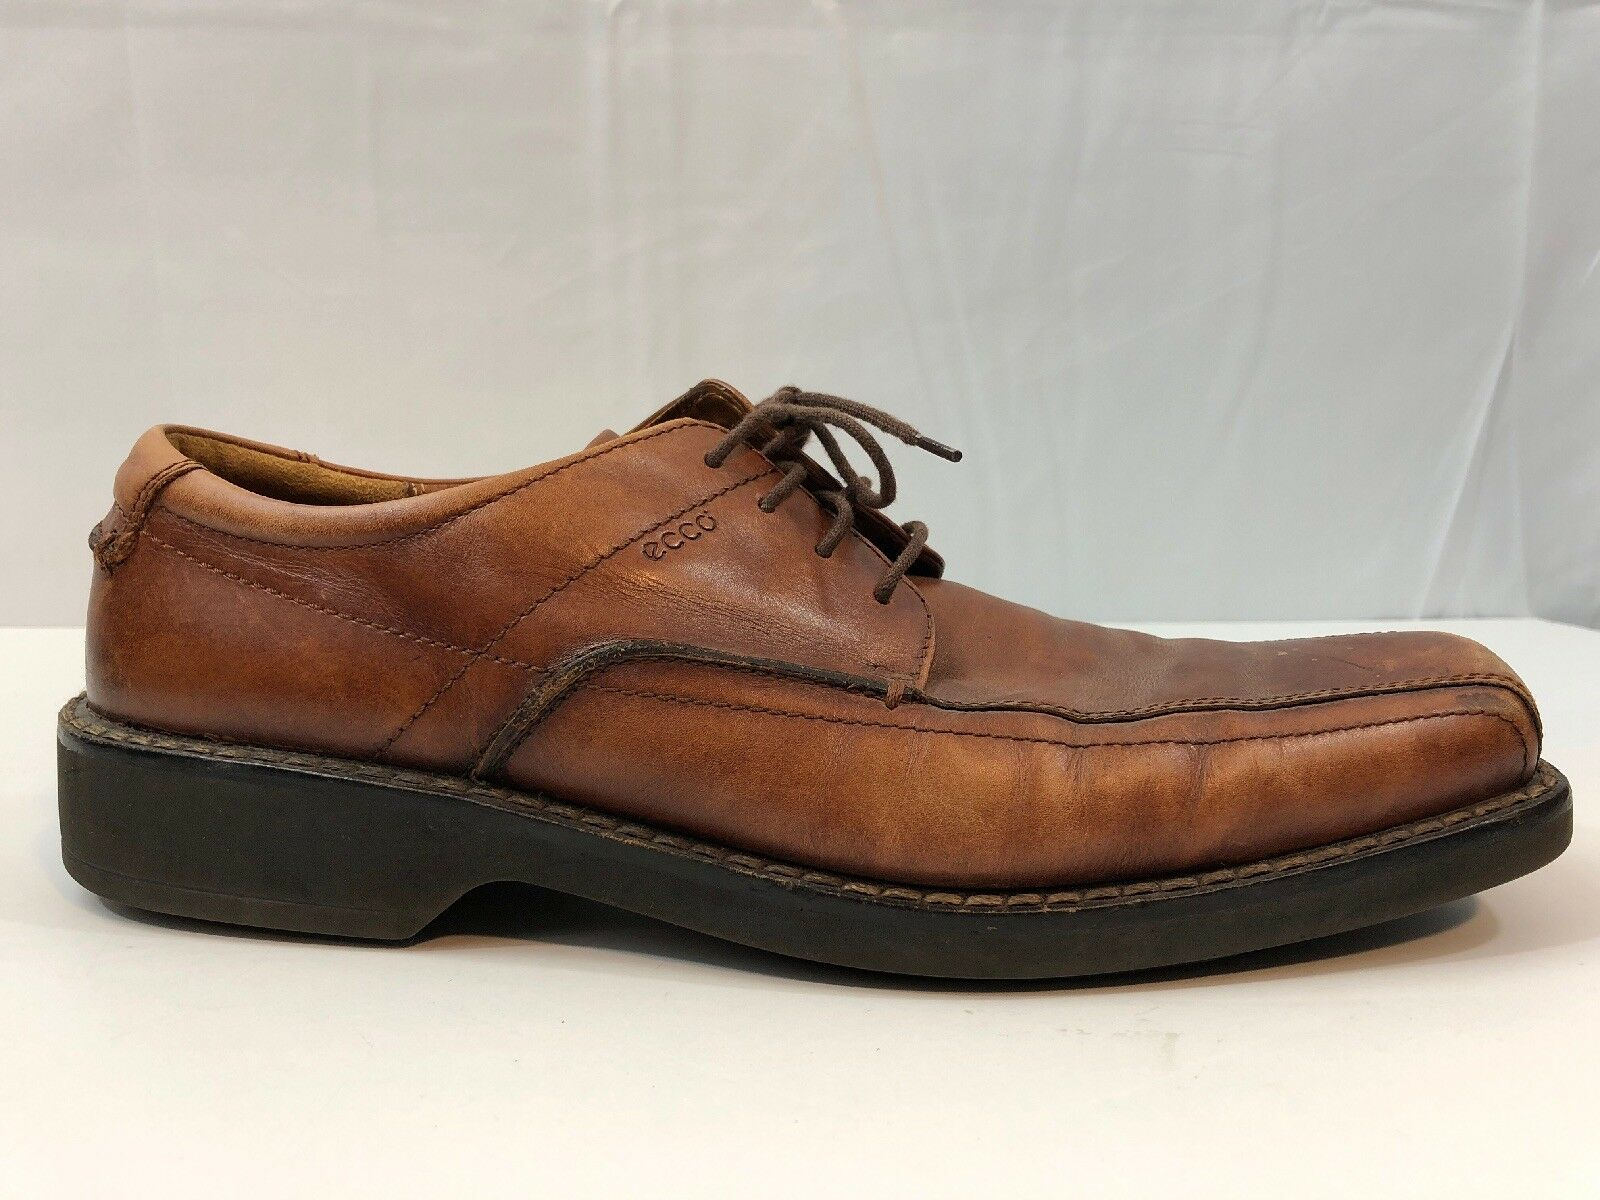 Ecco Mens Brown Leather Casual Dress Oxfords Bicycle Toe shoes 12 US 46 EUR